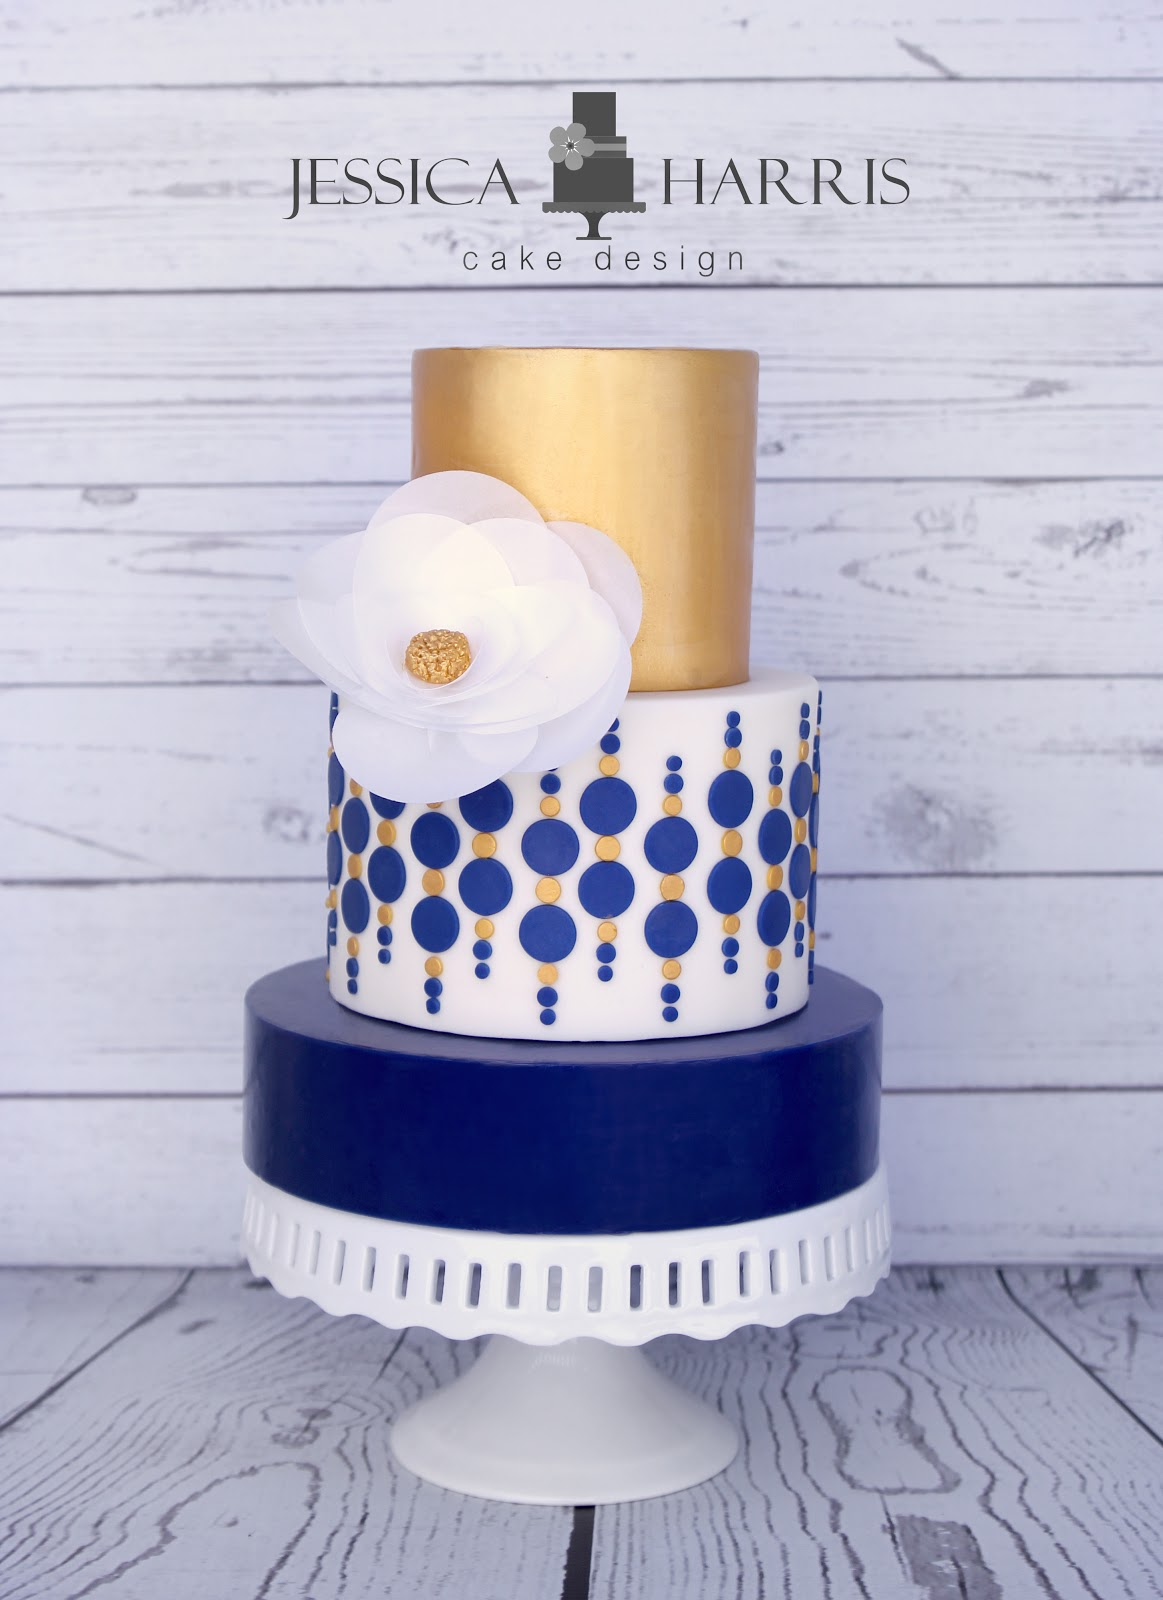 Clean Simple Cake Design With Jessica Harris : 20 NEW Cake Design Ideas!!! - Jessica Harris Cake Design